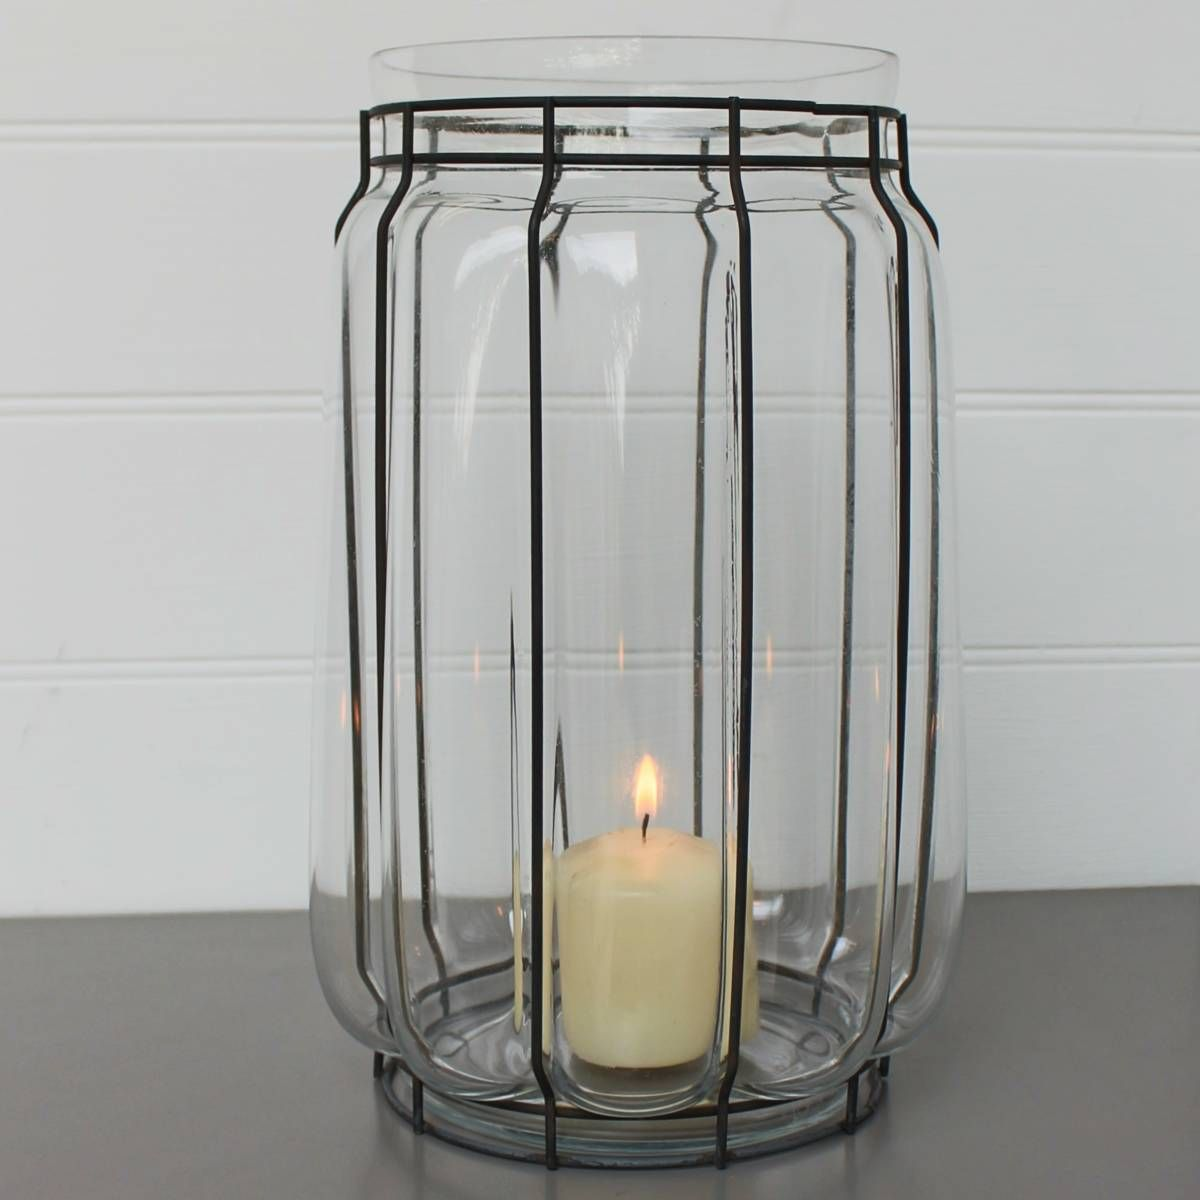 Extra large glass hurricane candle holders candles pinterest extra large glass hurricane candle holders reviewsmspy